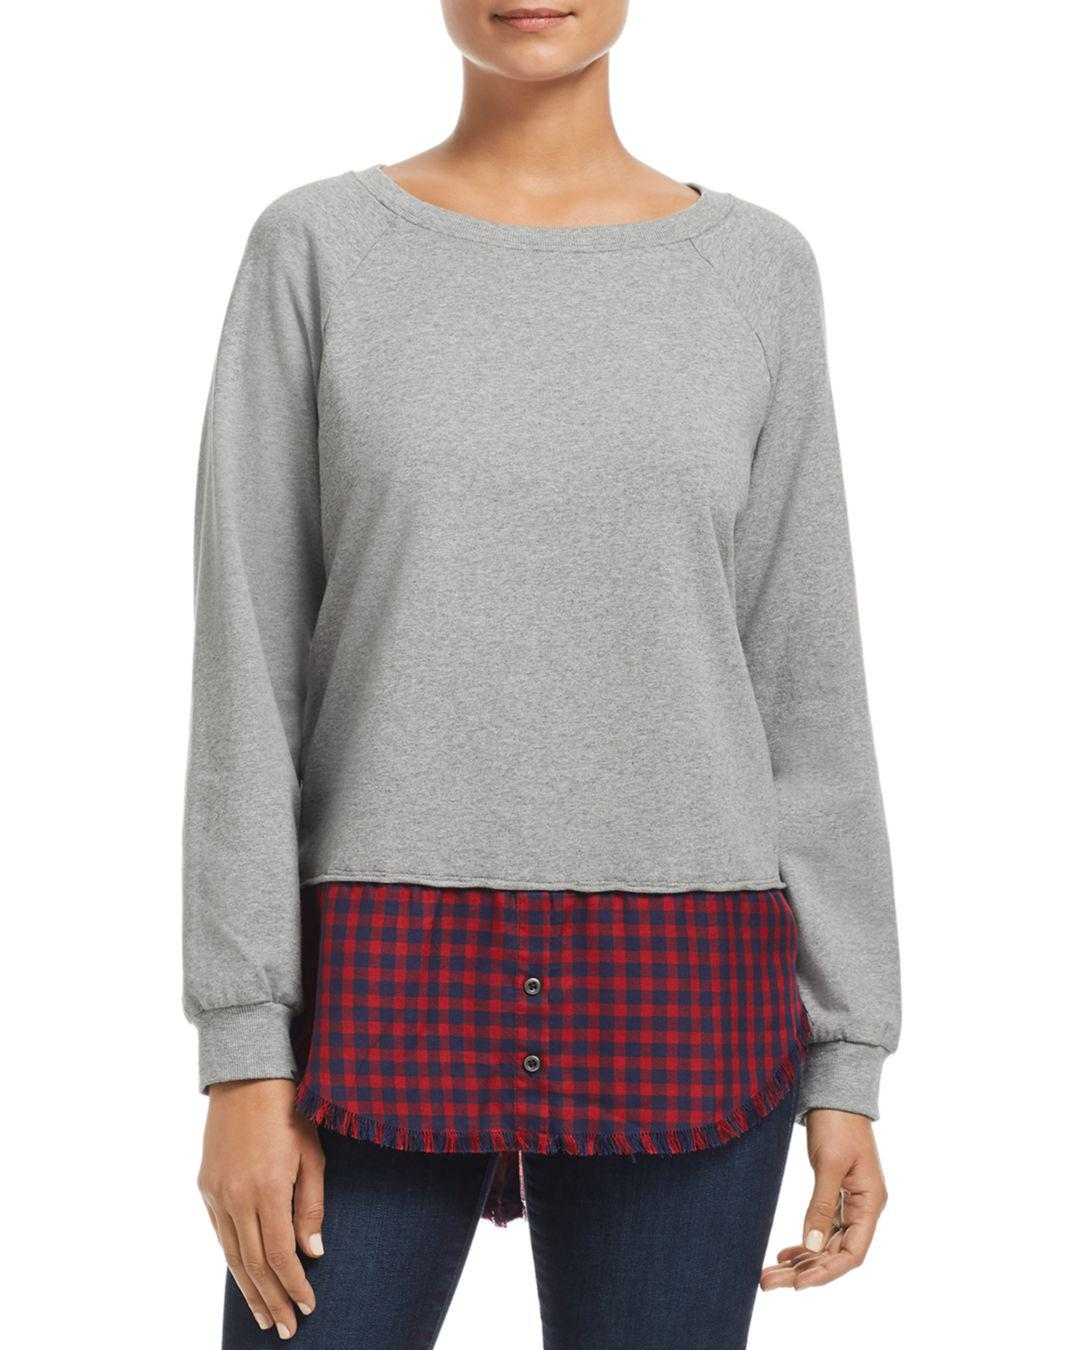 73705d8961e1c Billy T Plaid Shirttail Sweatshirt in Gray - Lyst